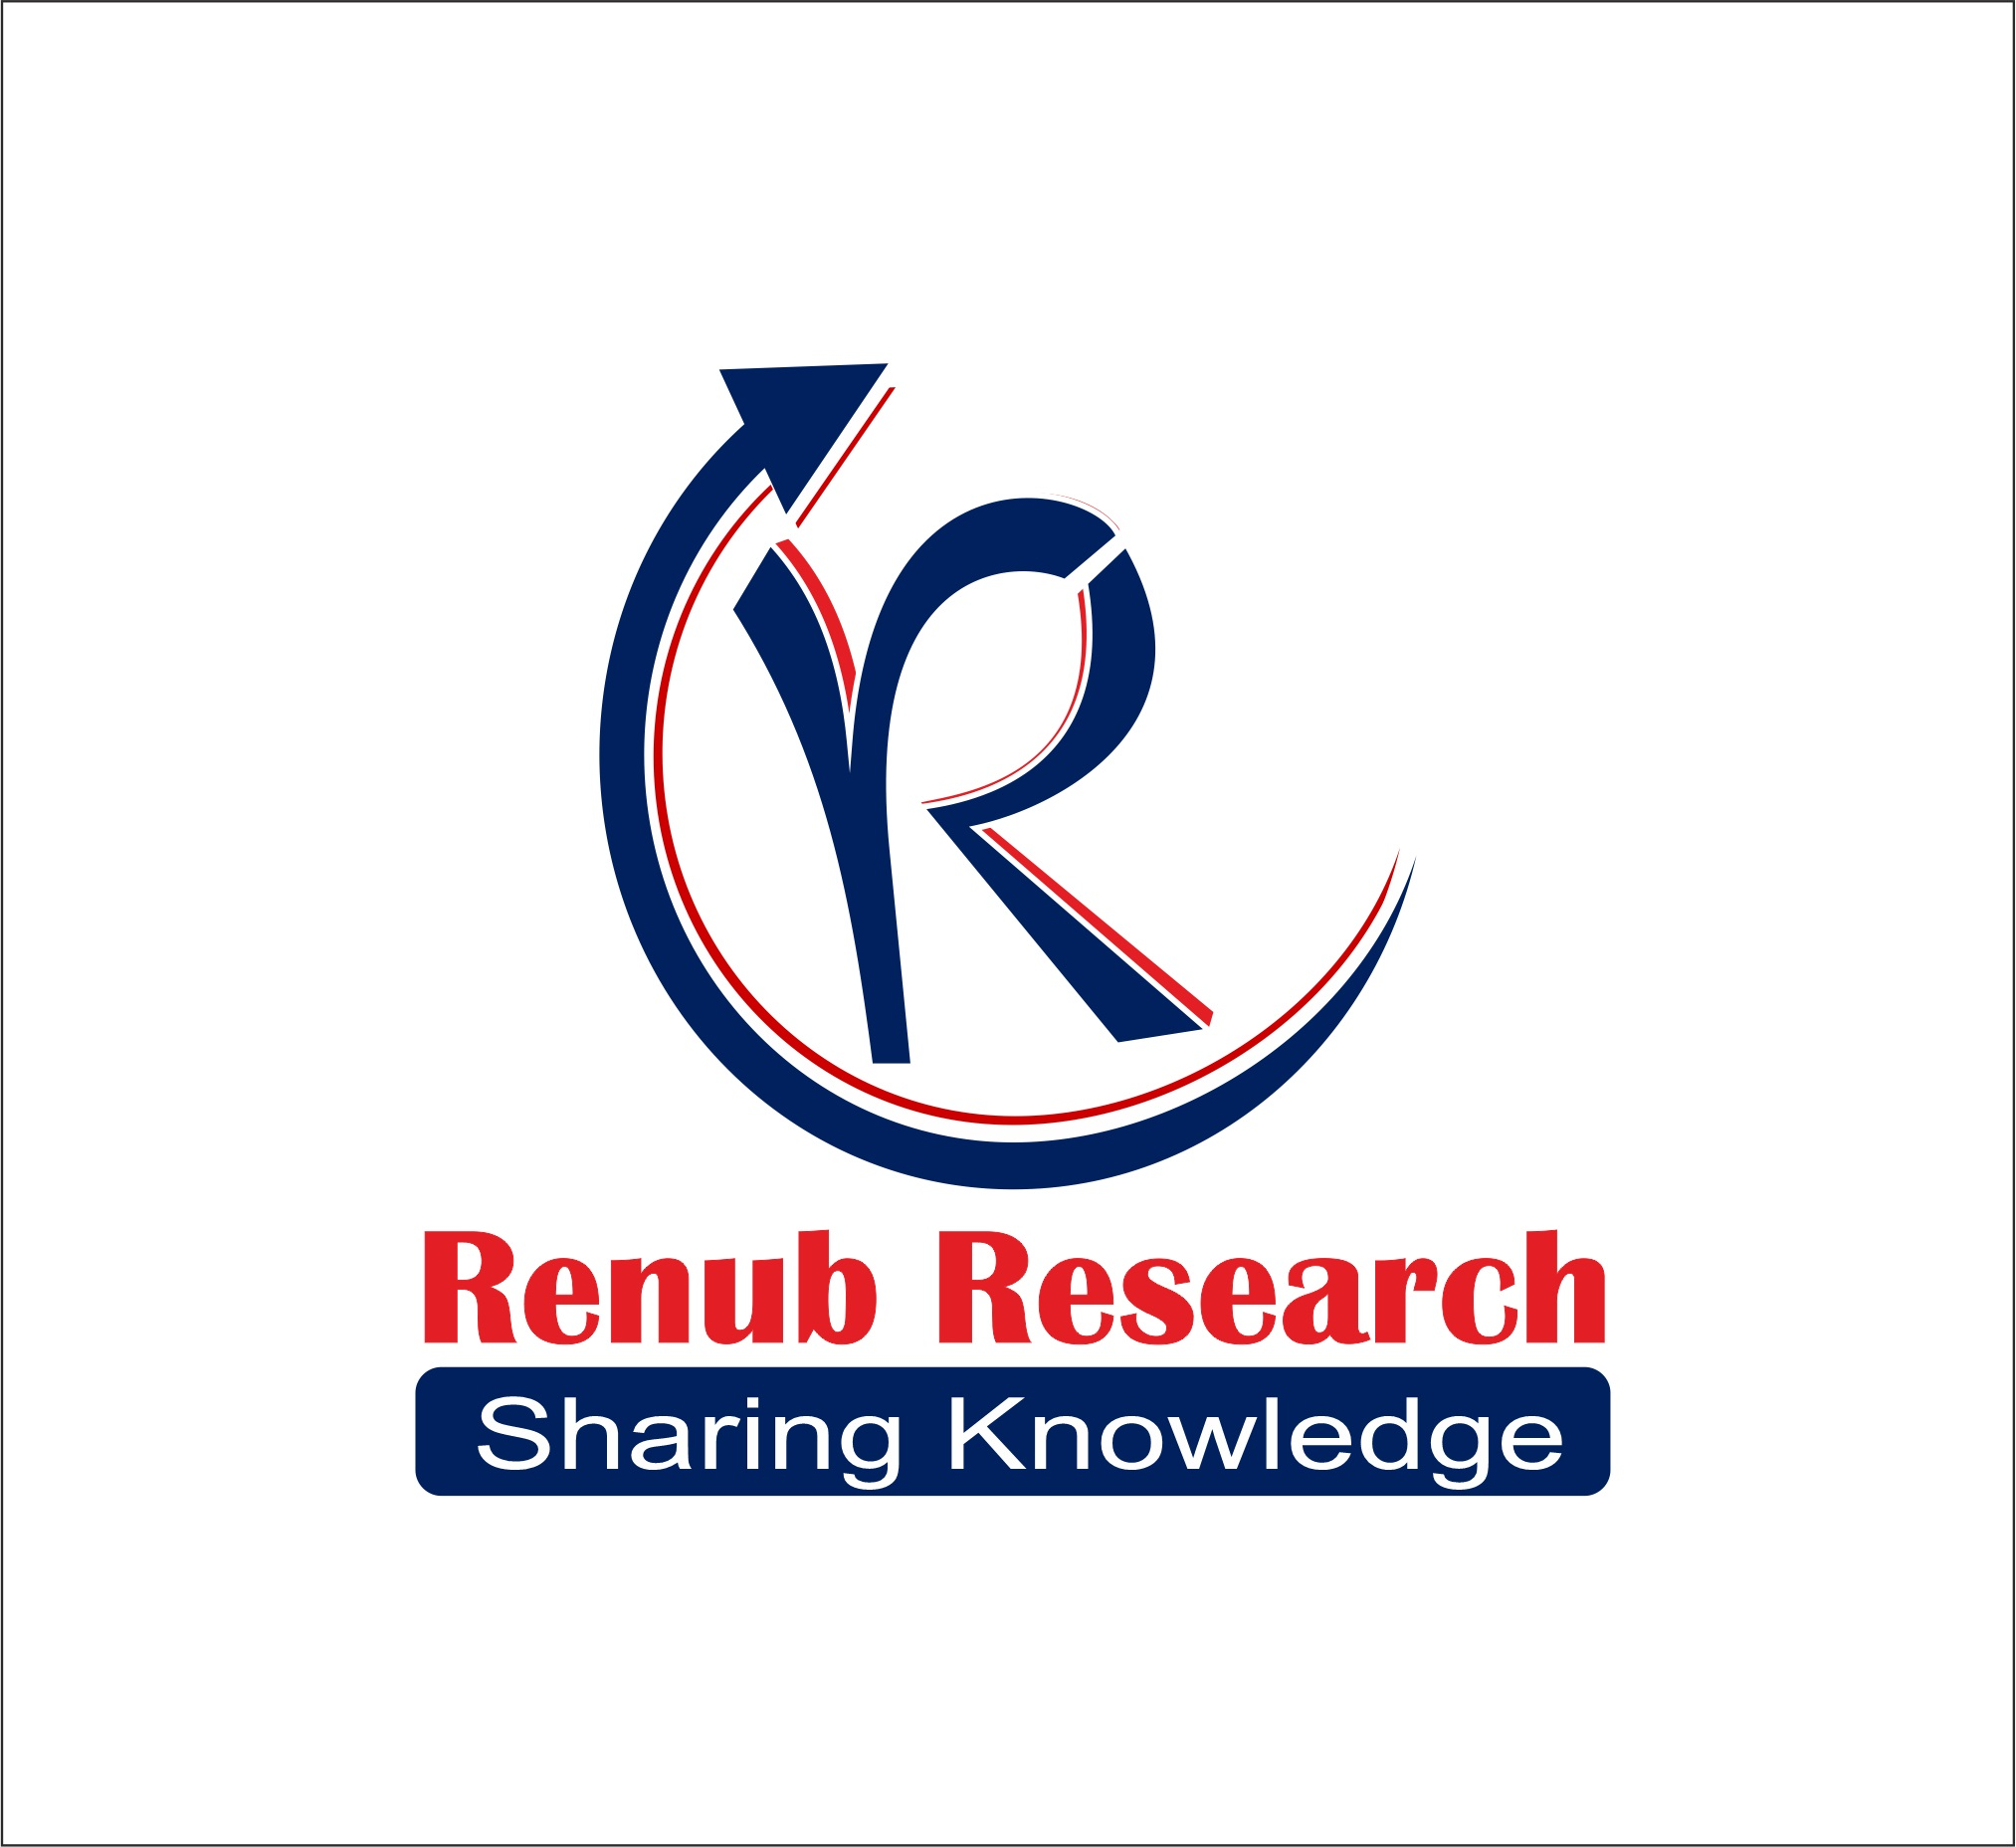 Modular Kitchen Market is forecasted to reach US$ 28.54 Billion by the year 2025 - Renub Research